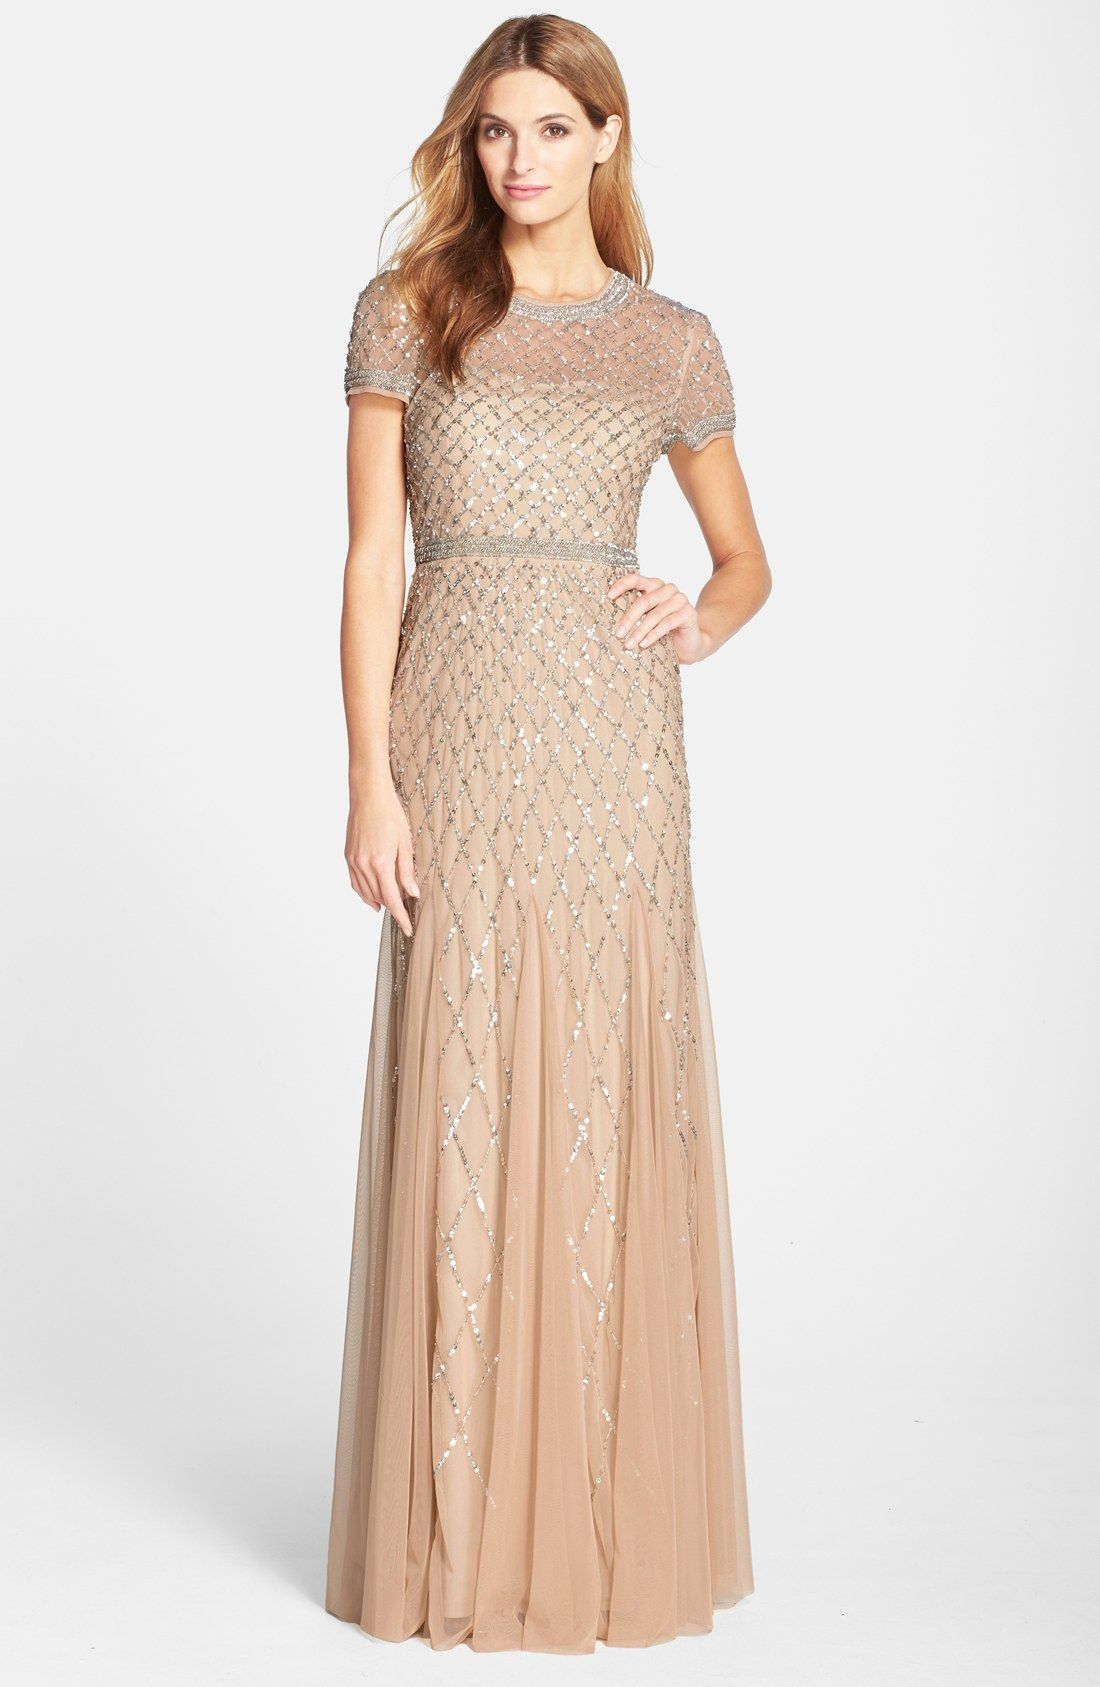 Champagne Mother of the Bride Dresses | Adrianna papell